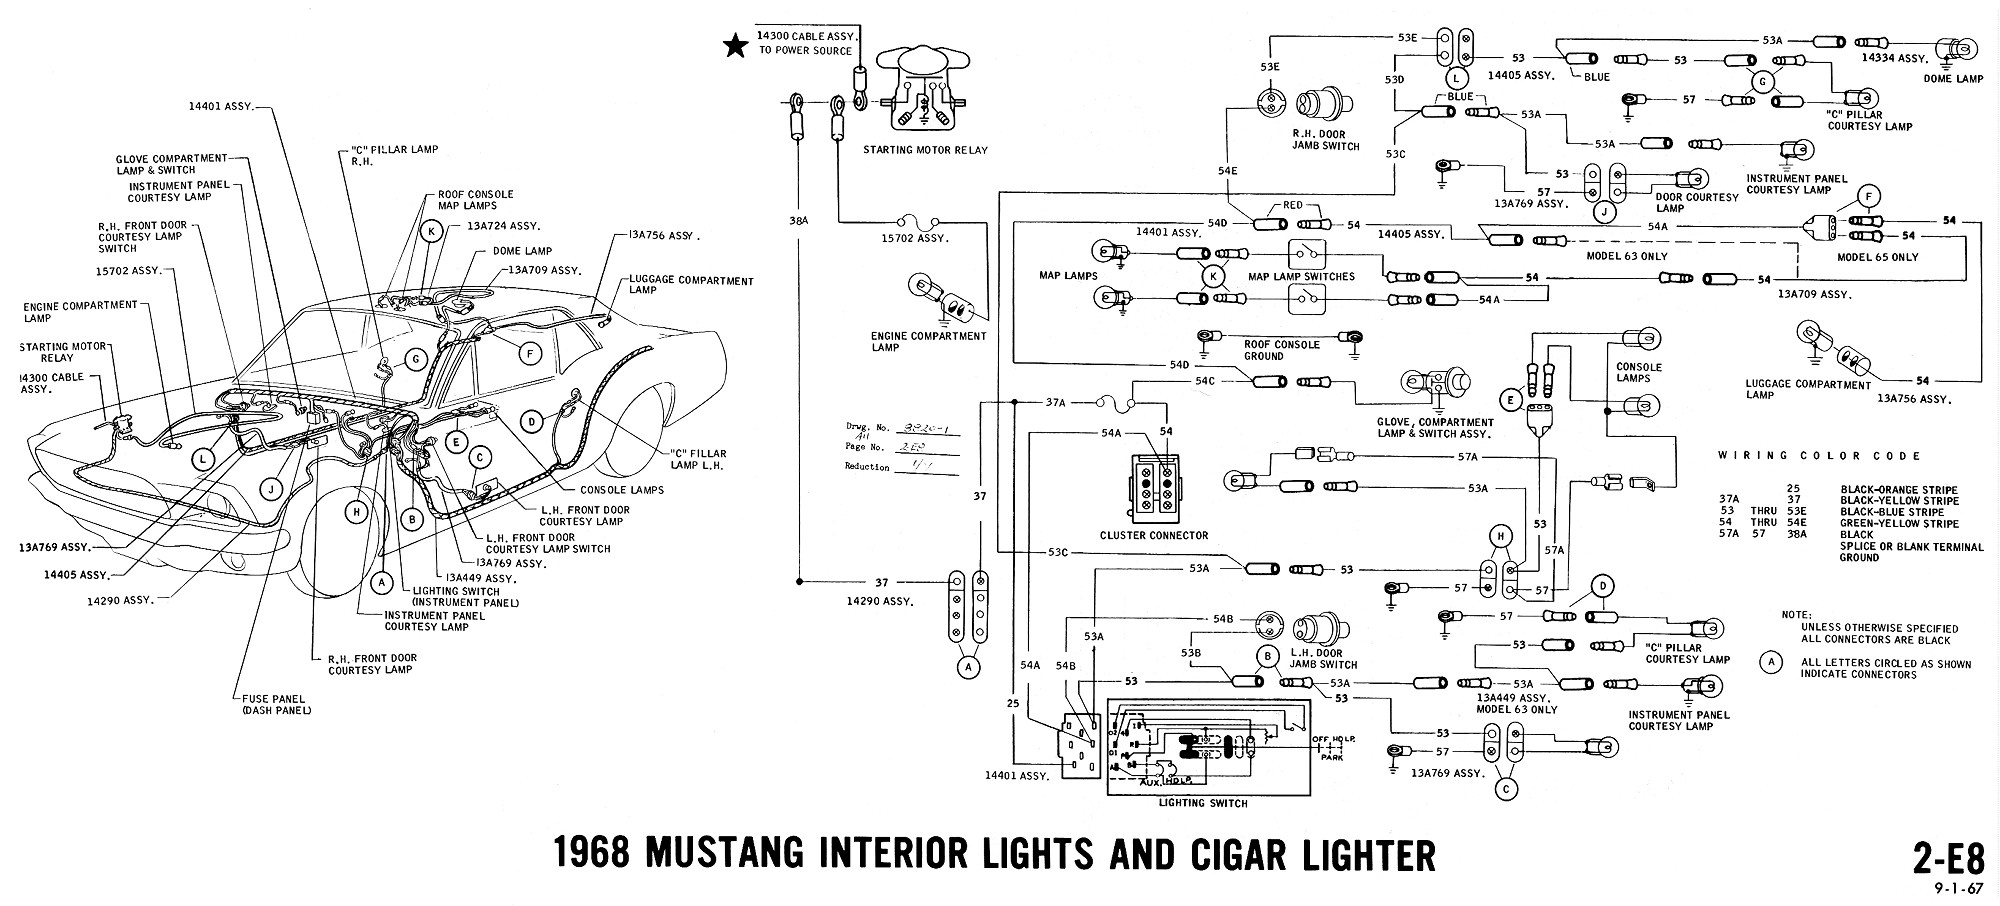 1968 mustang wiring diagram interior lights cigar lighter 2015 mustang wiring diagram schematic mustang 2015 \u2022 free wiring 2015 Mustang Wiring Diagram Lighting at bakdesigns.co